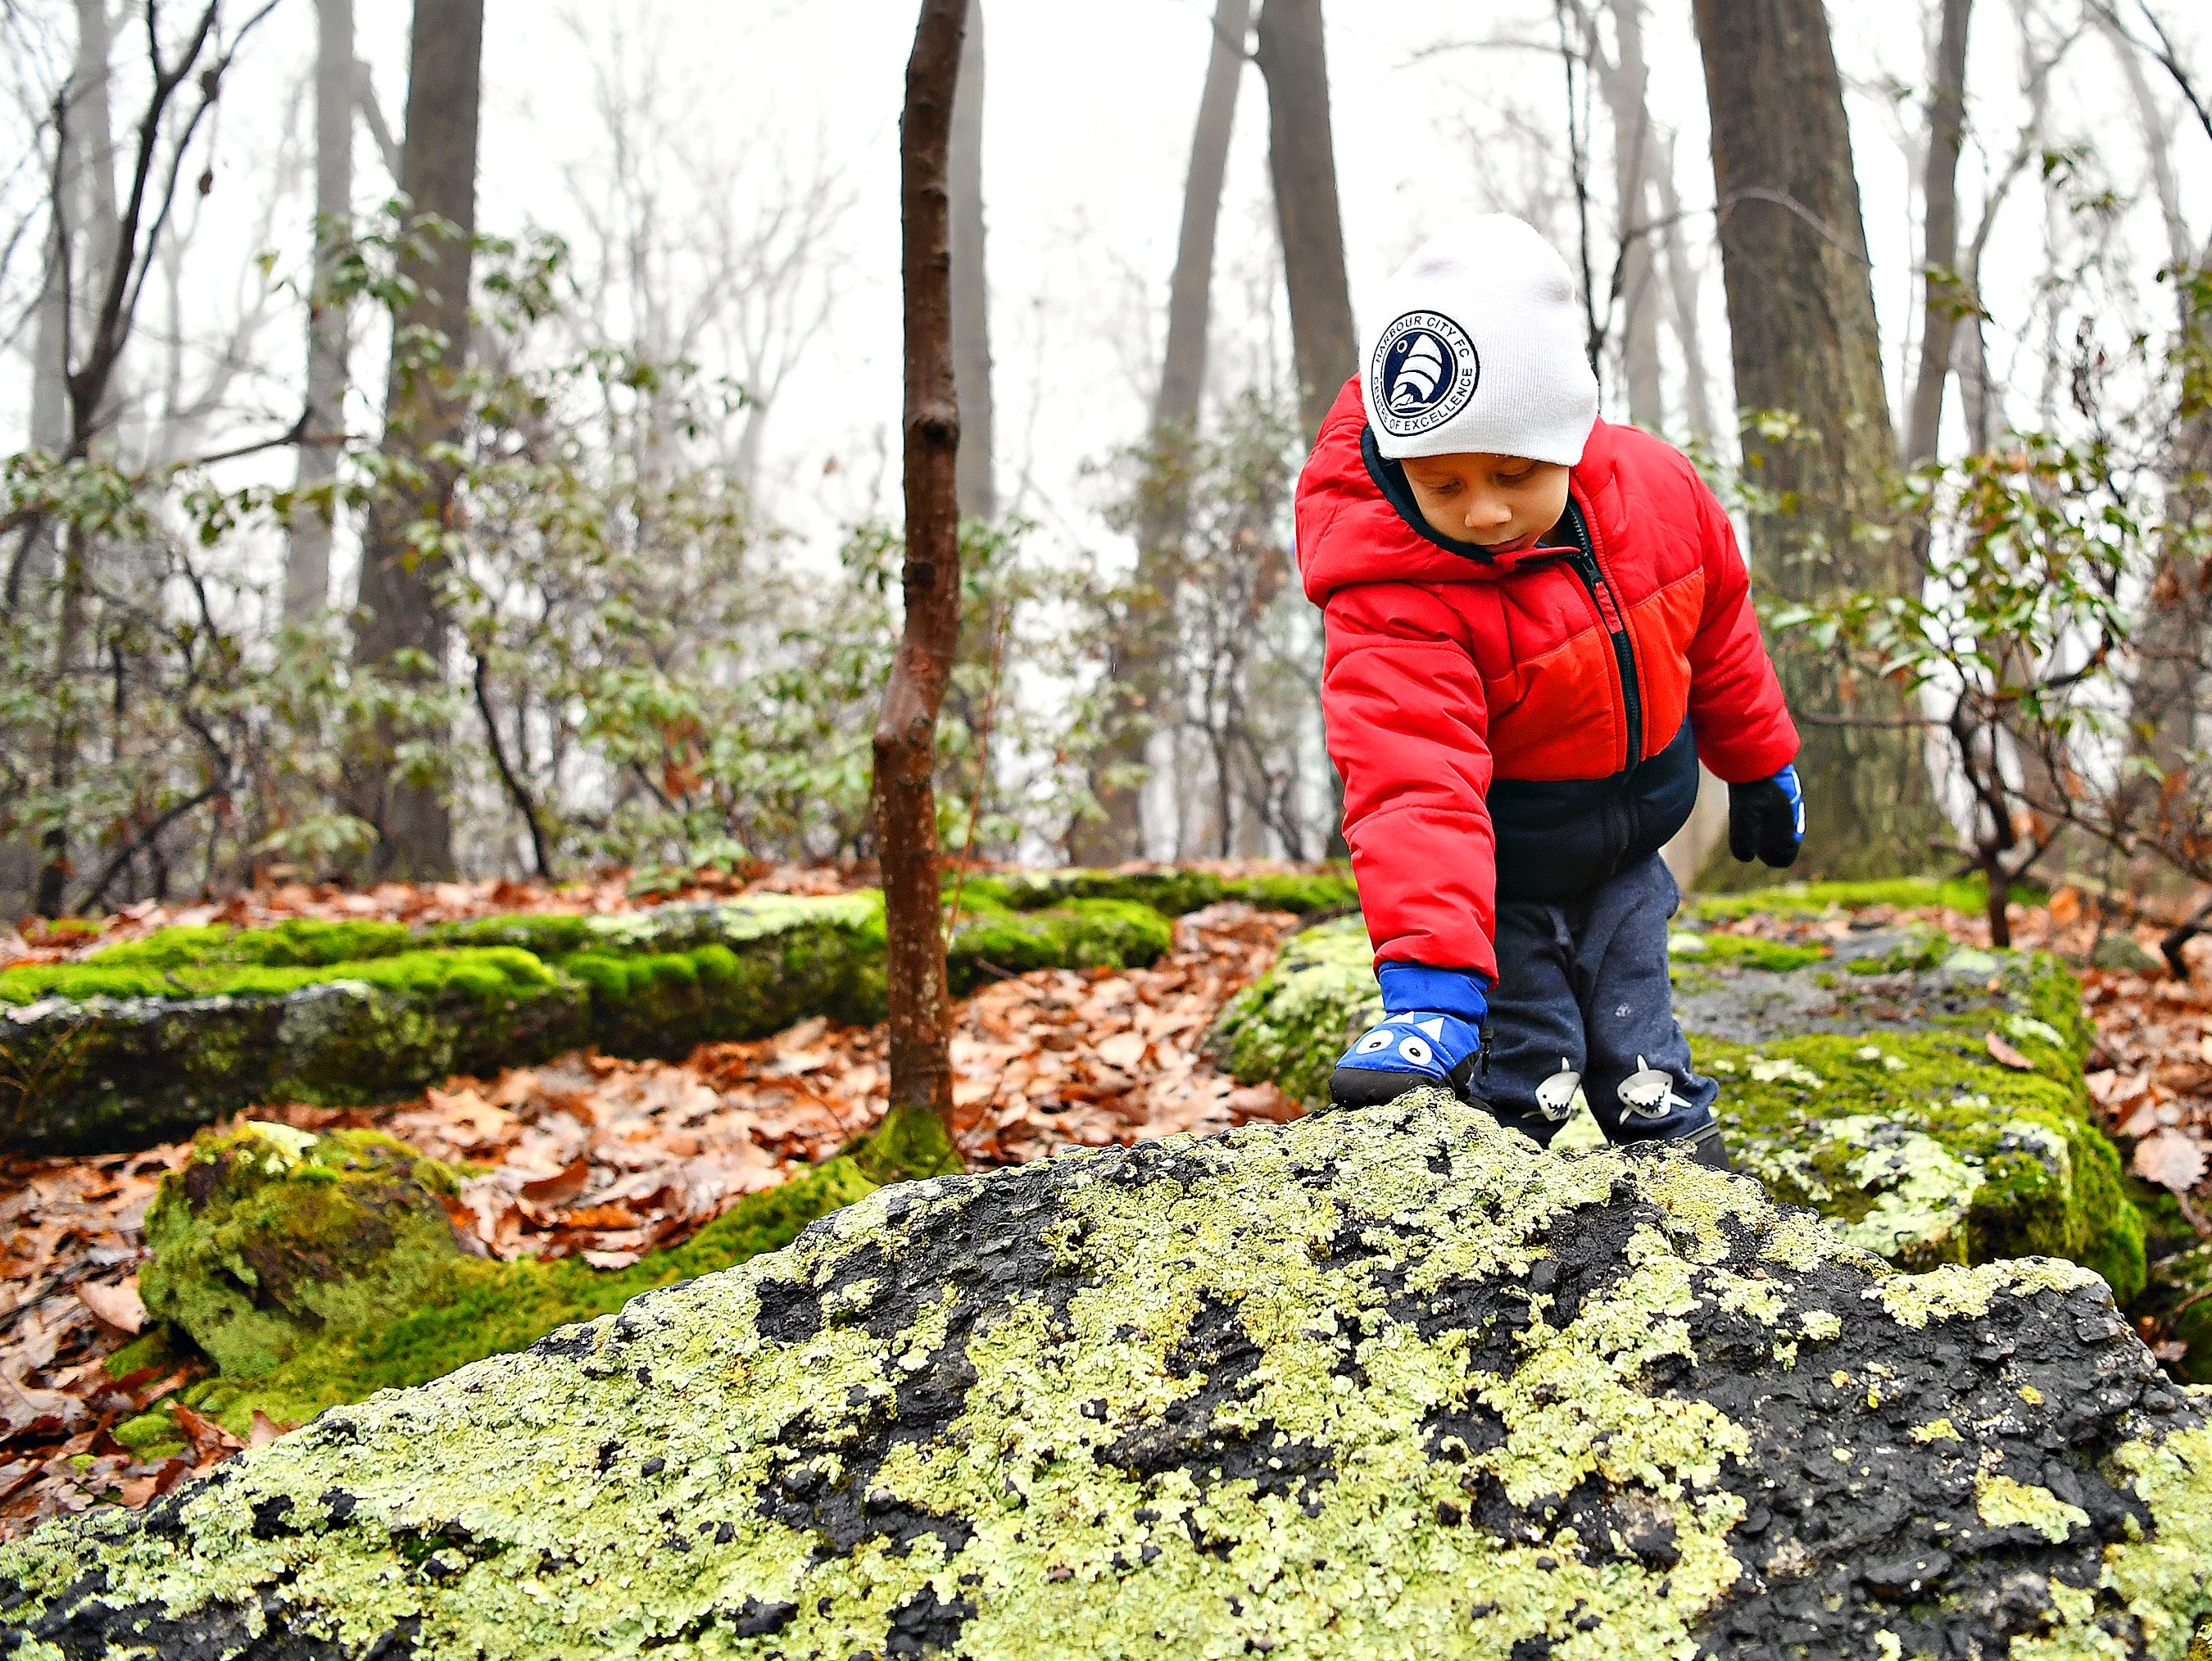 Tiago Hernandez, 4, of Yucatan, Mexico, examines moss-covered rocks during a Marshmallow Hike at Rocky Ridge Park in Springettsbury Township, Friday, Dec. 28, 2018. Dawn J. Sagert photo